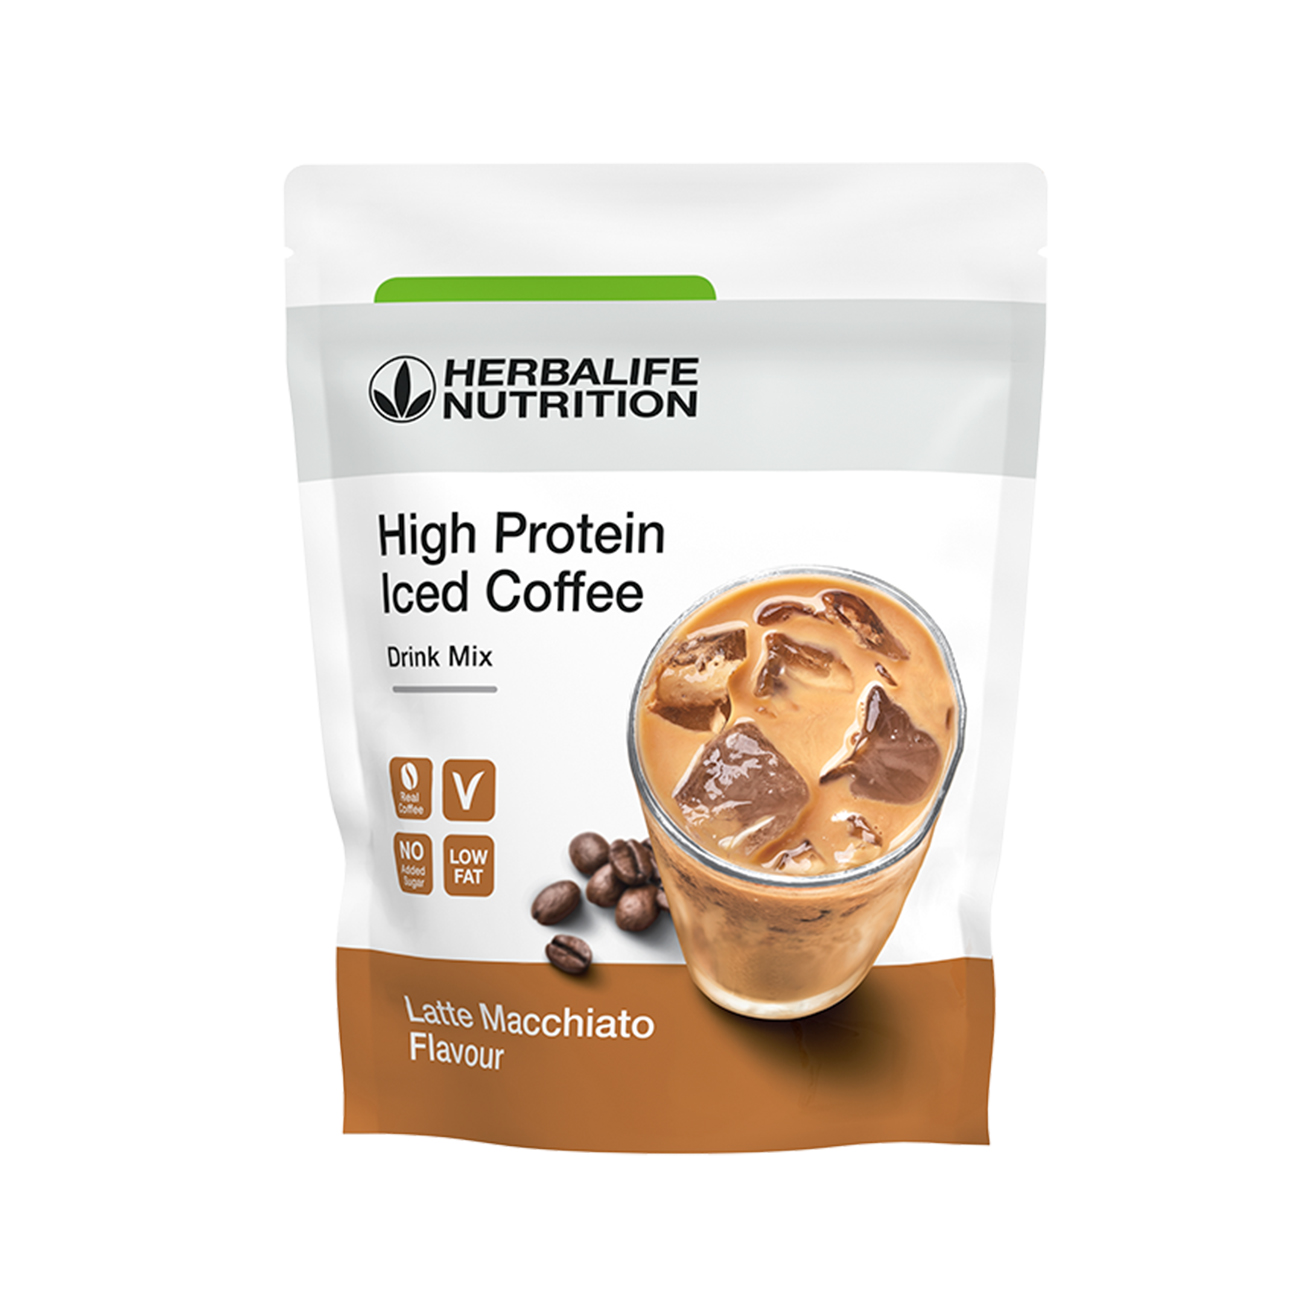 High Protein Iced Coffee  Latte Macchiato product shot